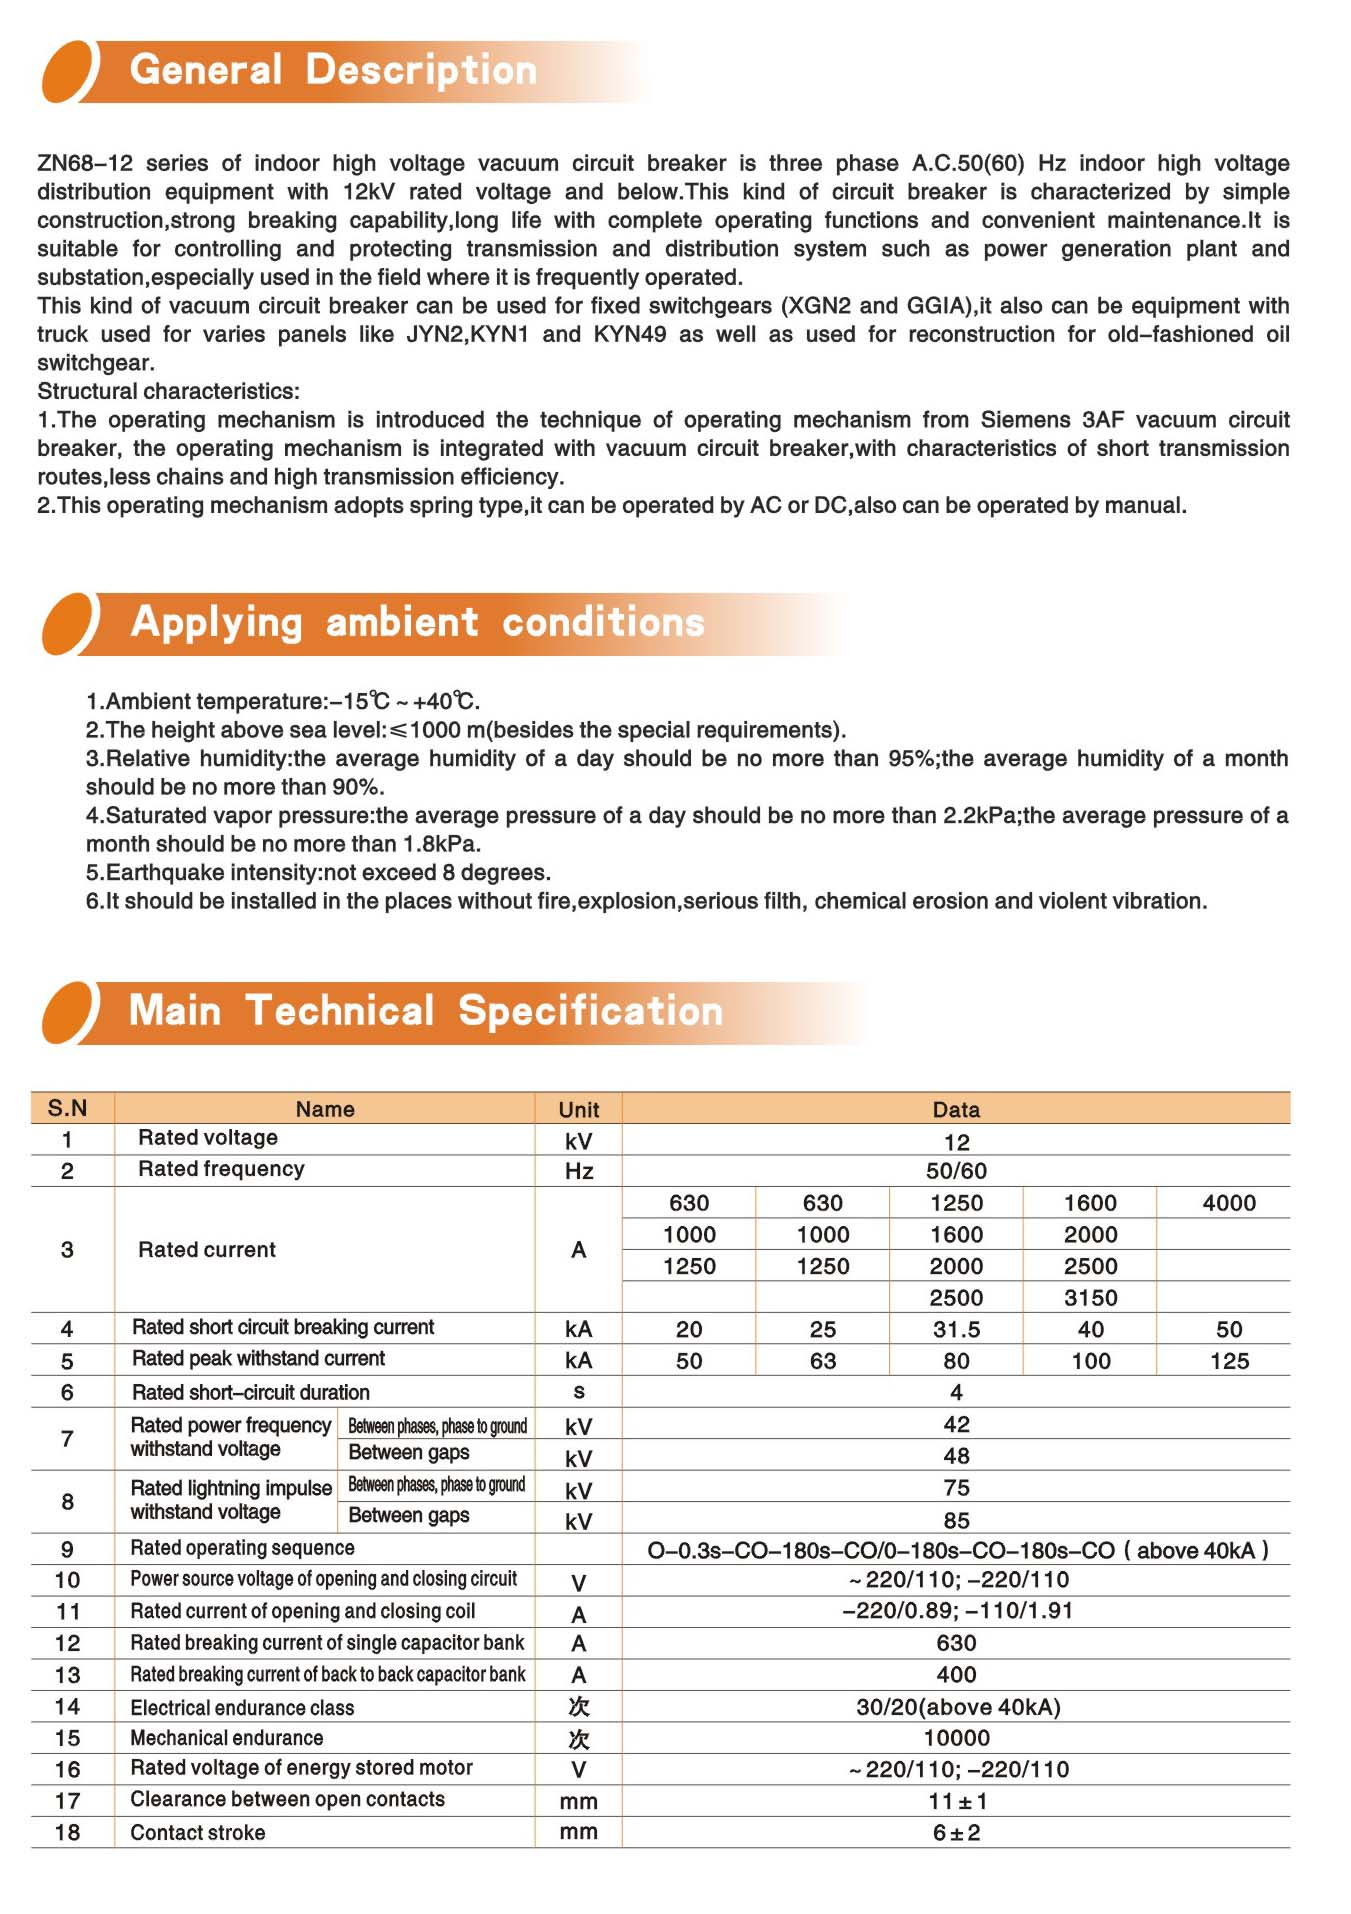 ZN68-12 Type Technical Specification